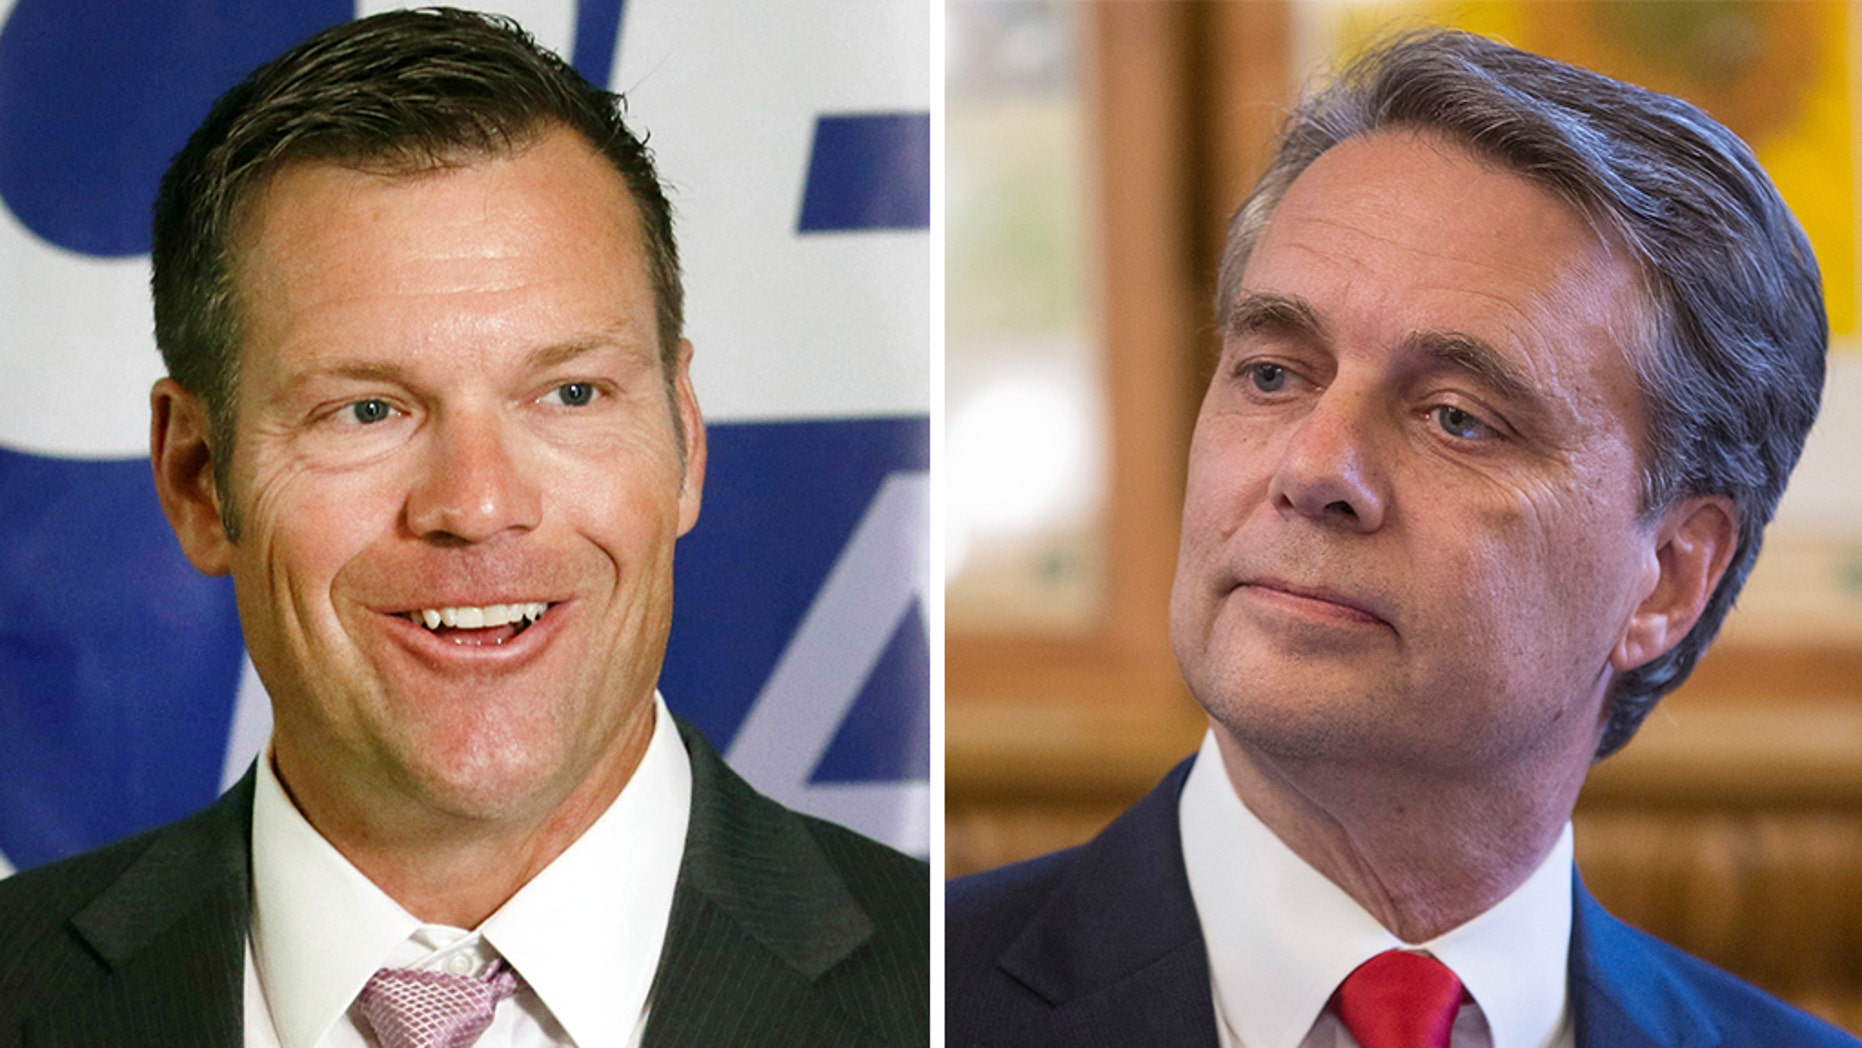 Kansas Secretary of State Kris Kobach (left) won the state's Republican gubernatorial primary after Gov. Jeff Colyer (right) conceded a week after their neck-and-neck finish threatened to send the race to a recount.